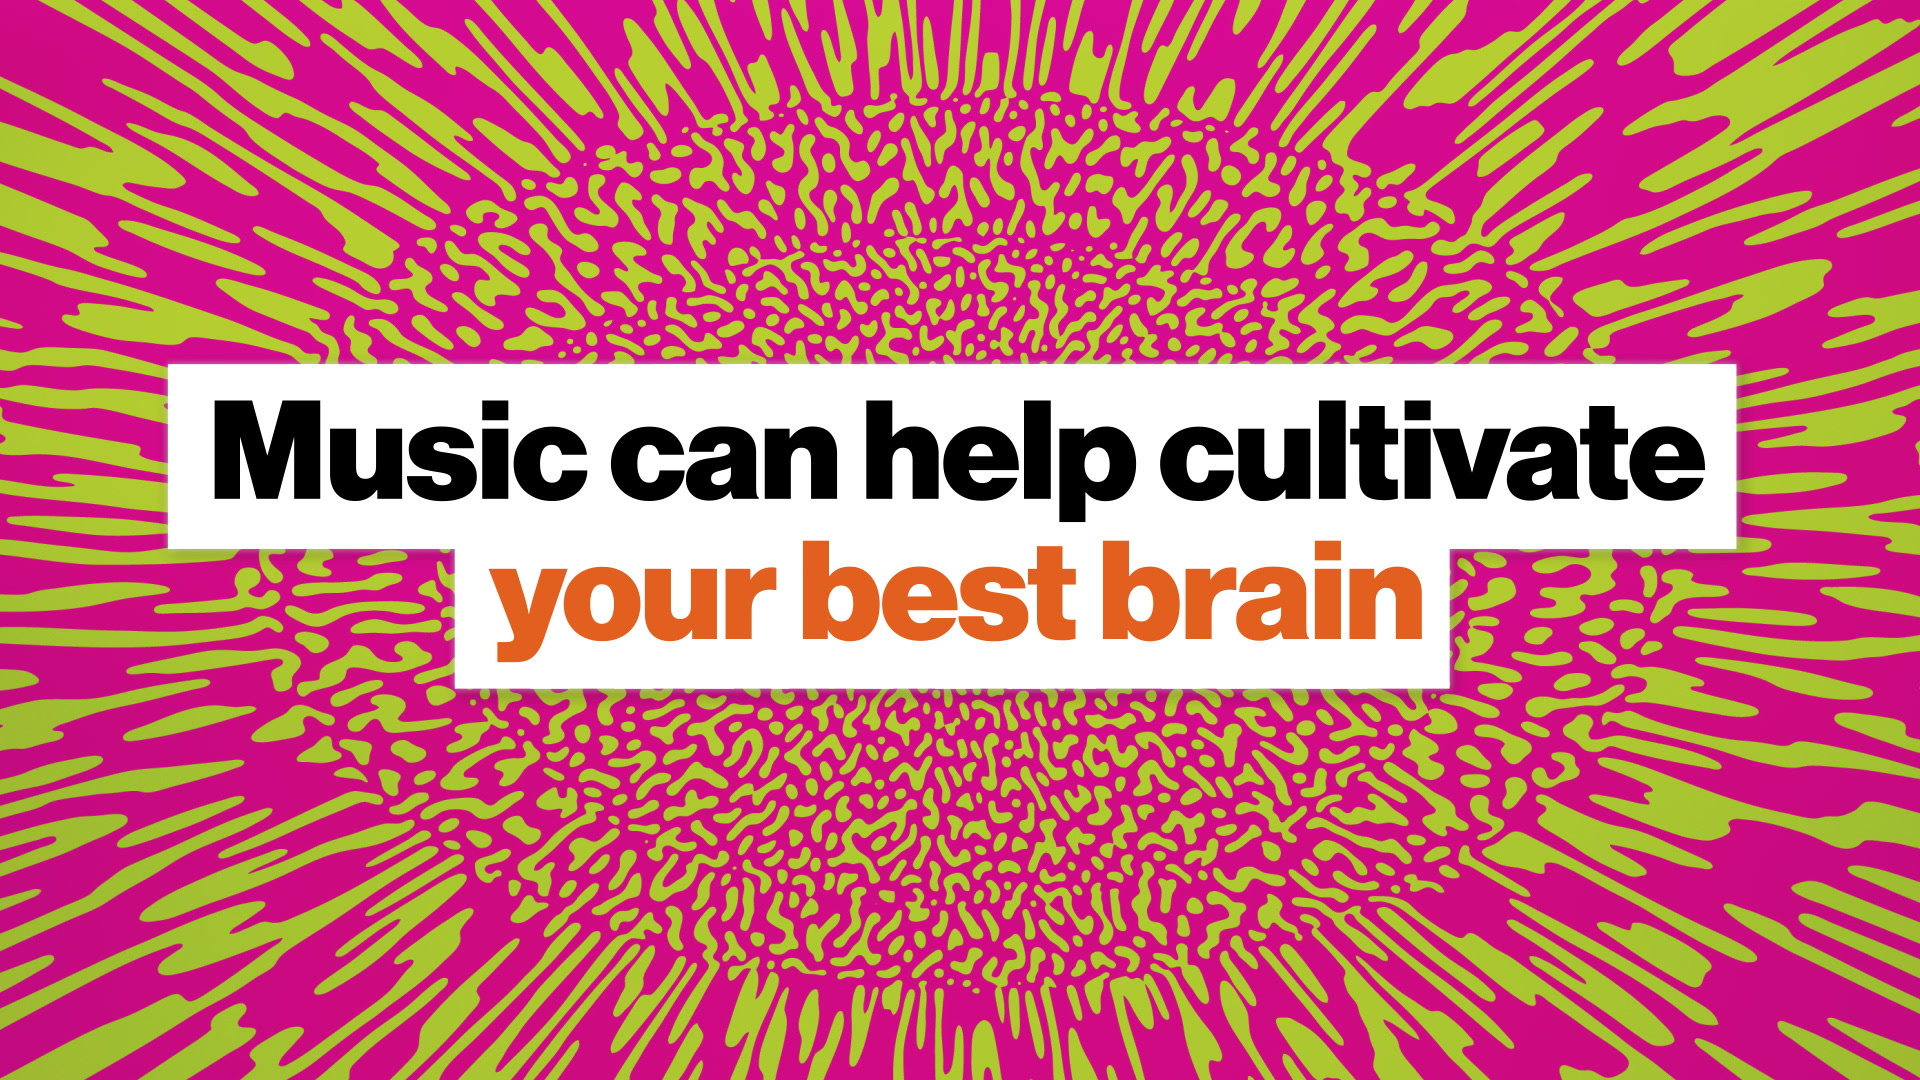 Scientists are creating music to unlock your brain's potential